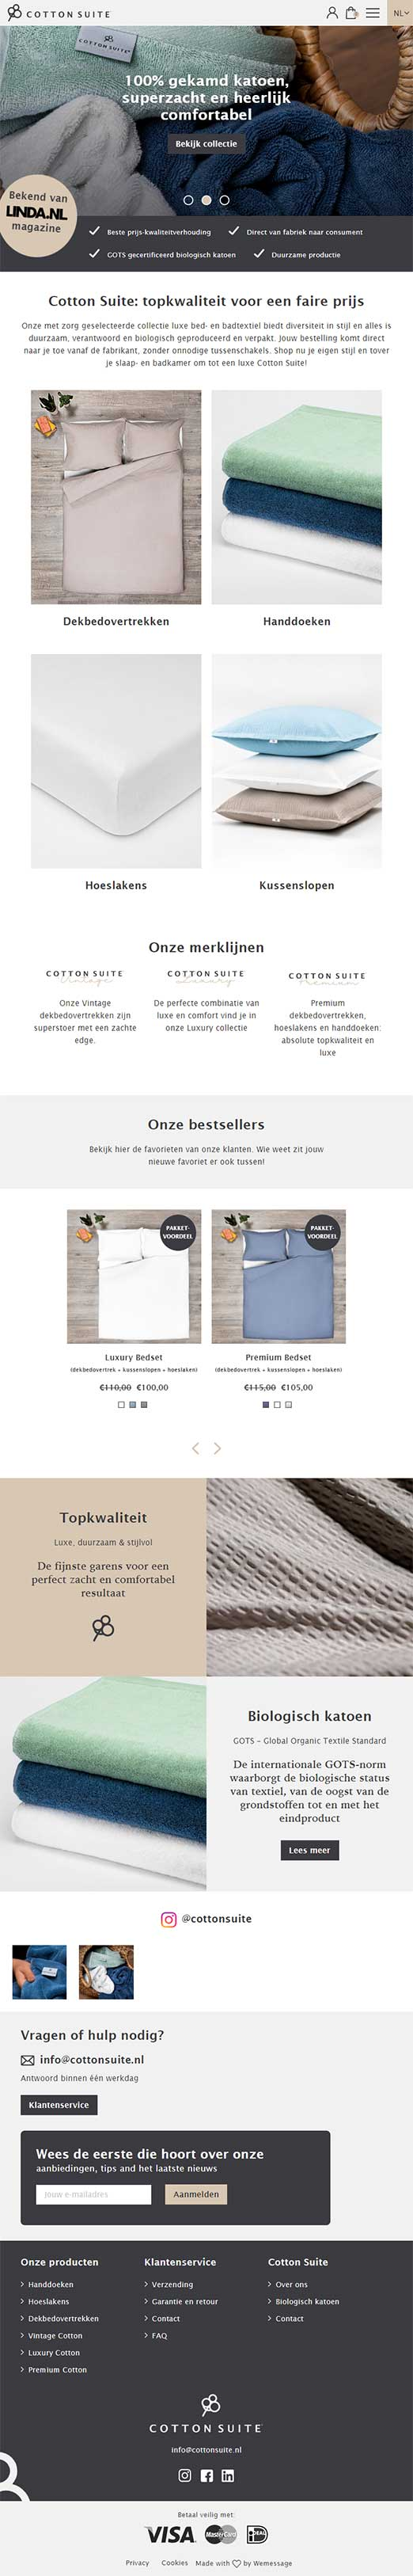 Cotton Suite website voorbeeld op tablets